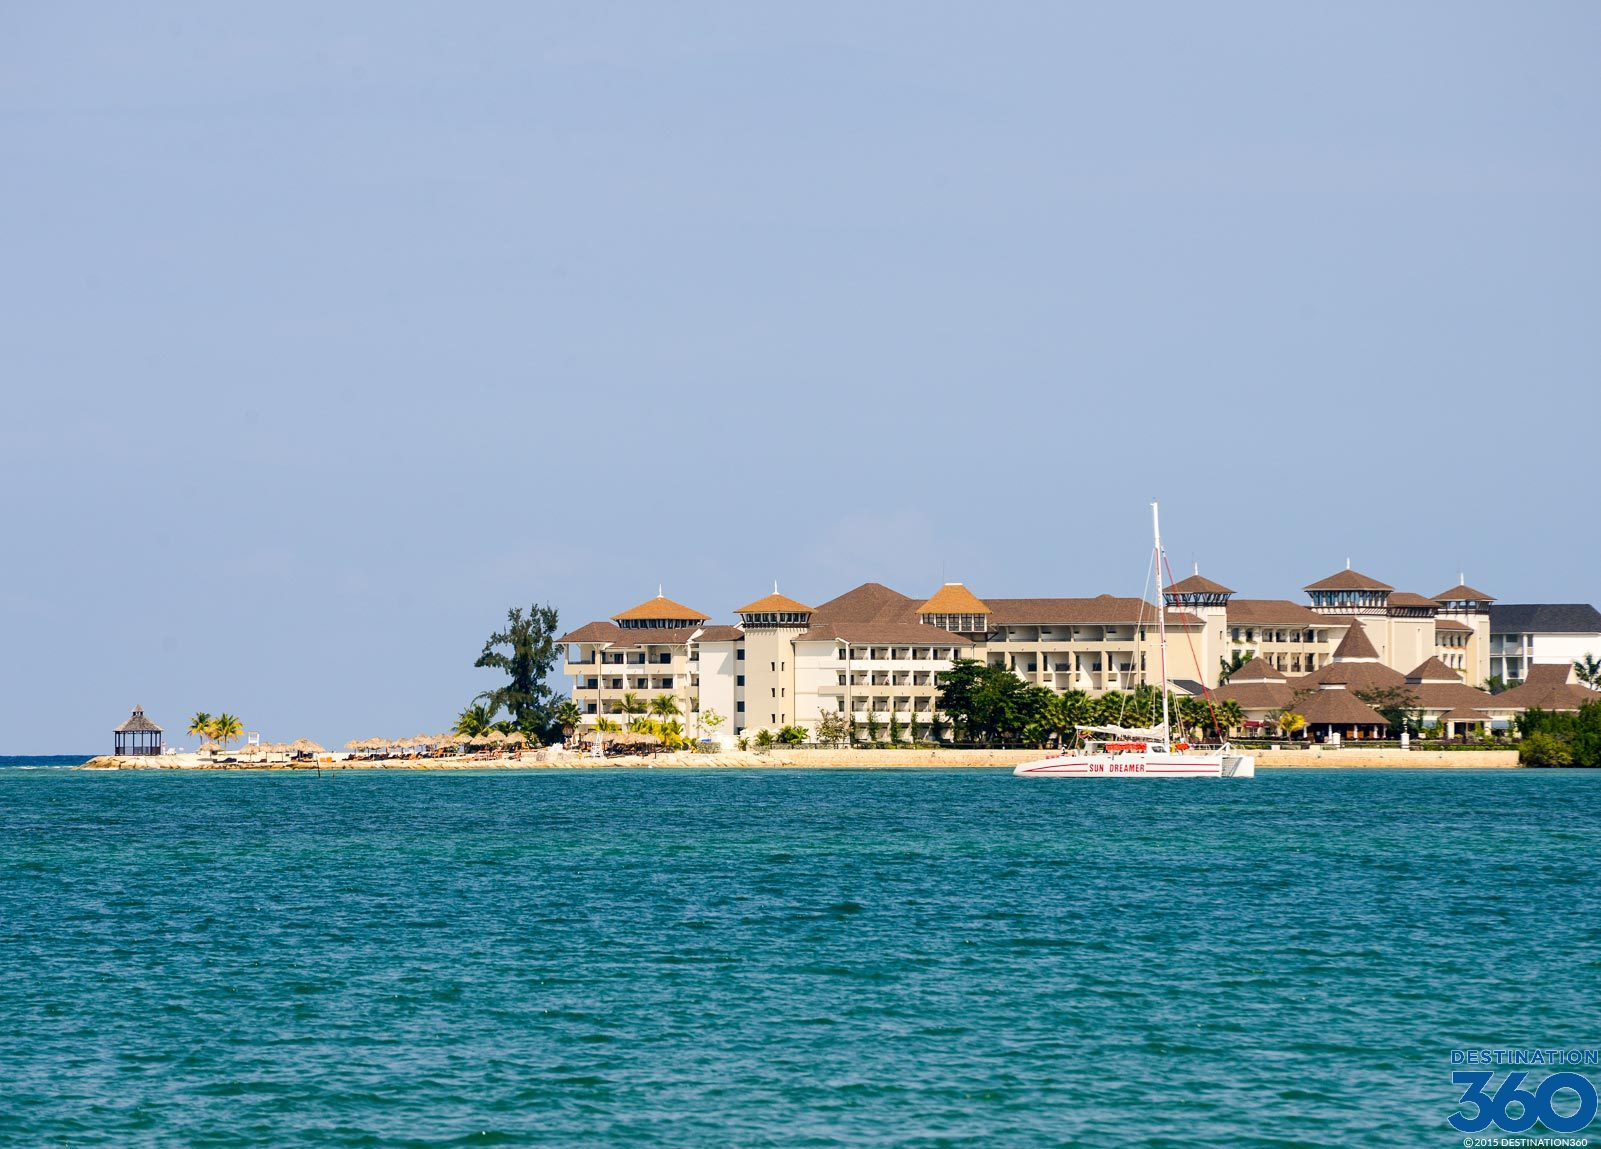 Hotels in Negril Jamaica